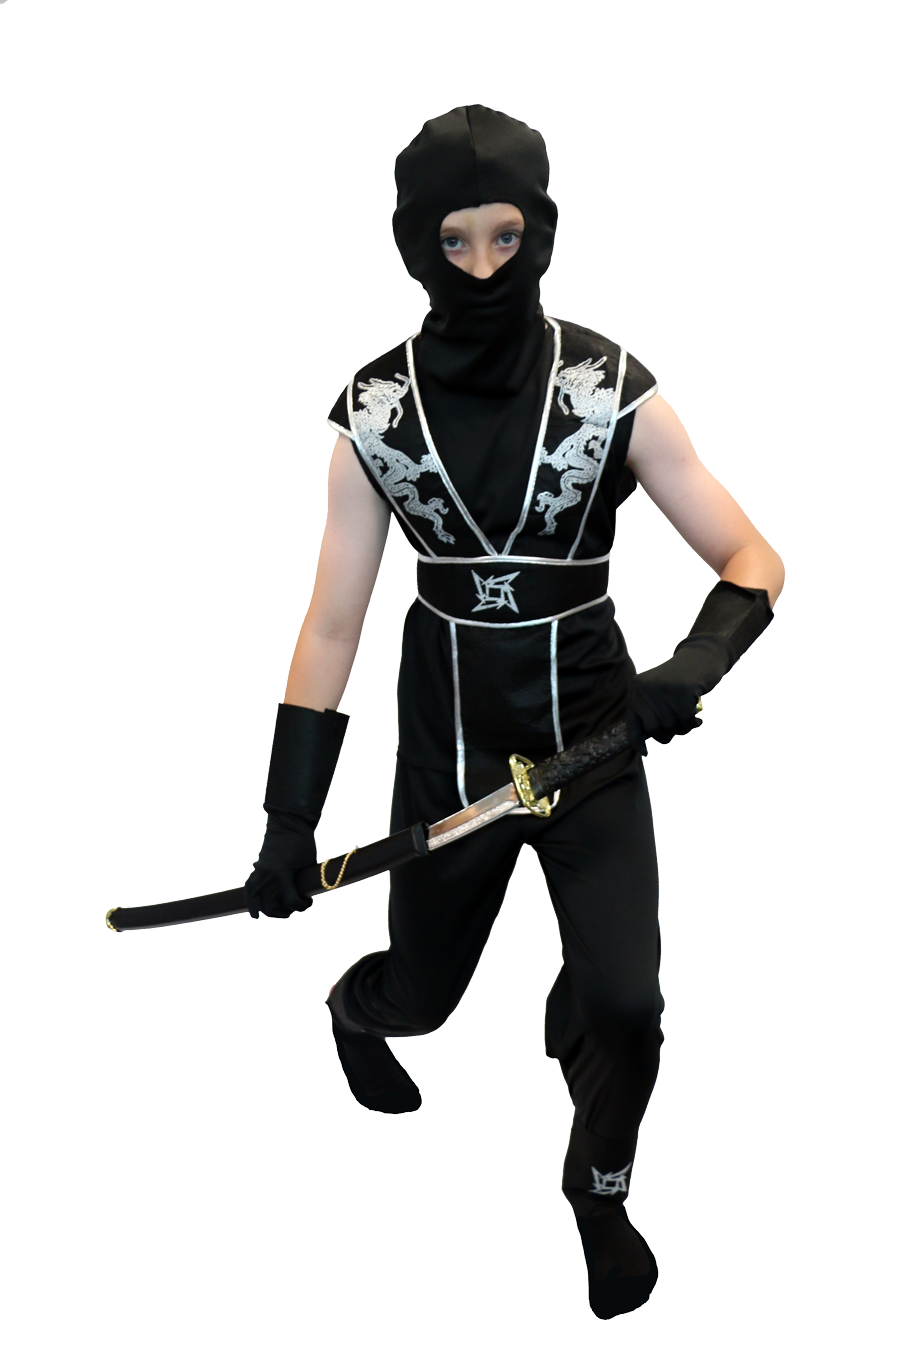 Ninja Child Costume - Buy